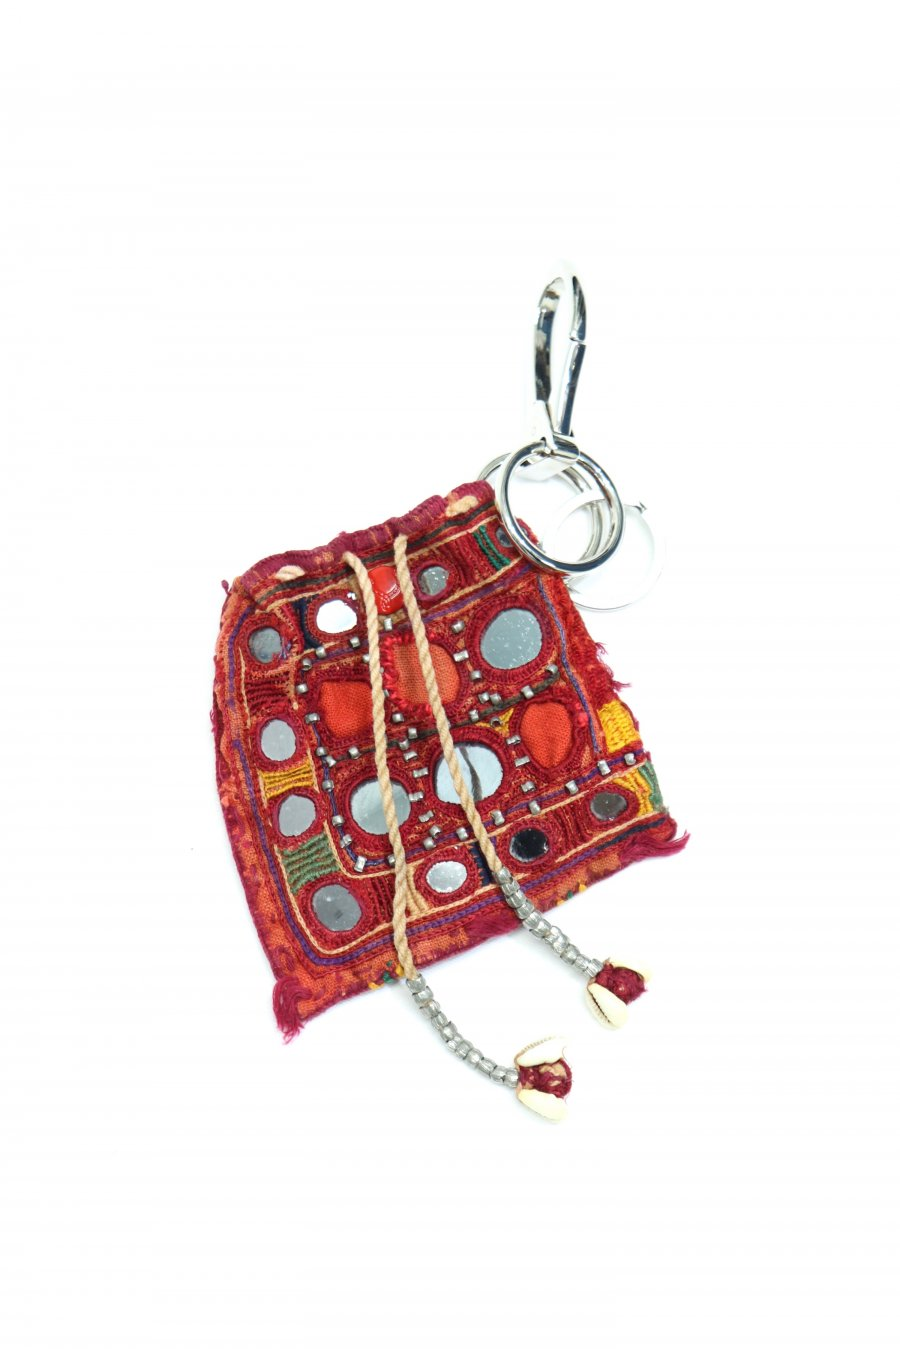 LEH   Key Ring Special-1<img class='new_mark_img2' src='https://img.shop-pro.jp/img/new/icons15.gif' style='border:none;display:inline;margin:0px;padding:0px;width:auto;' />